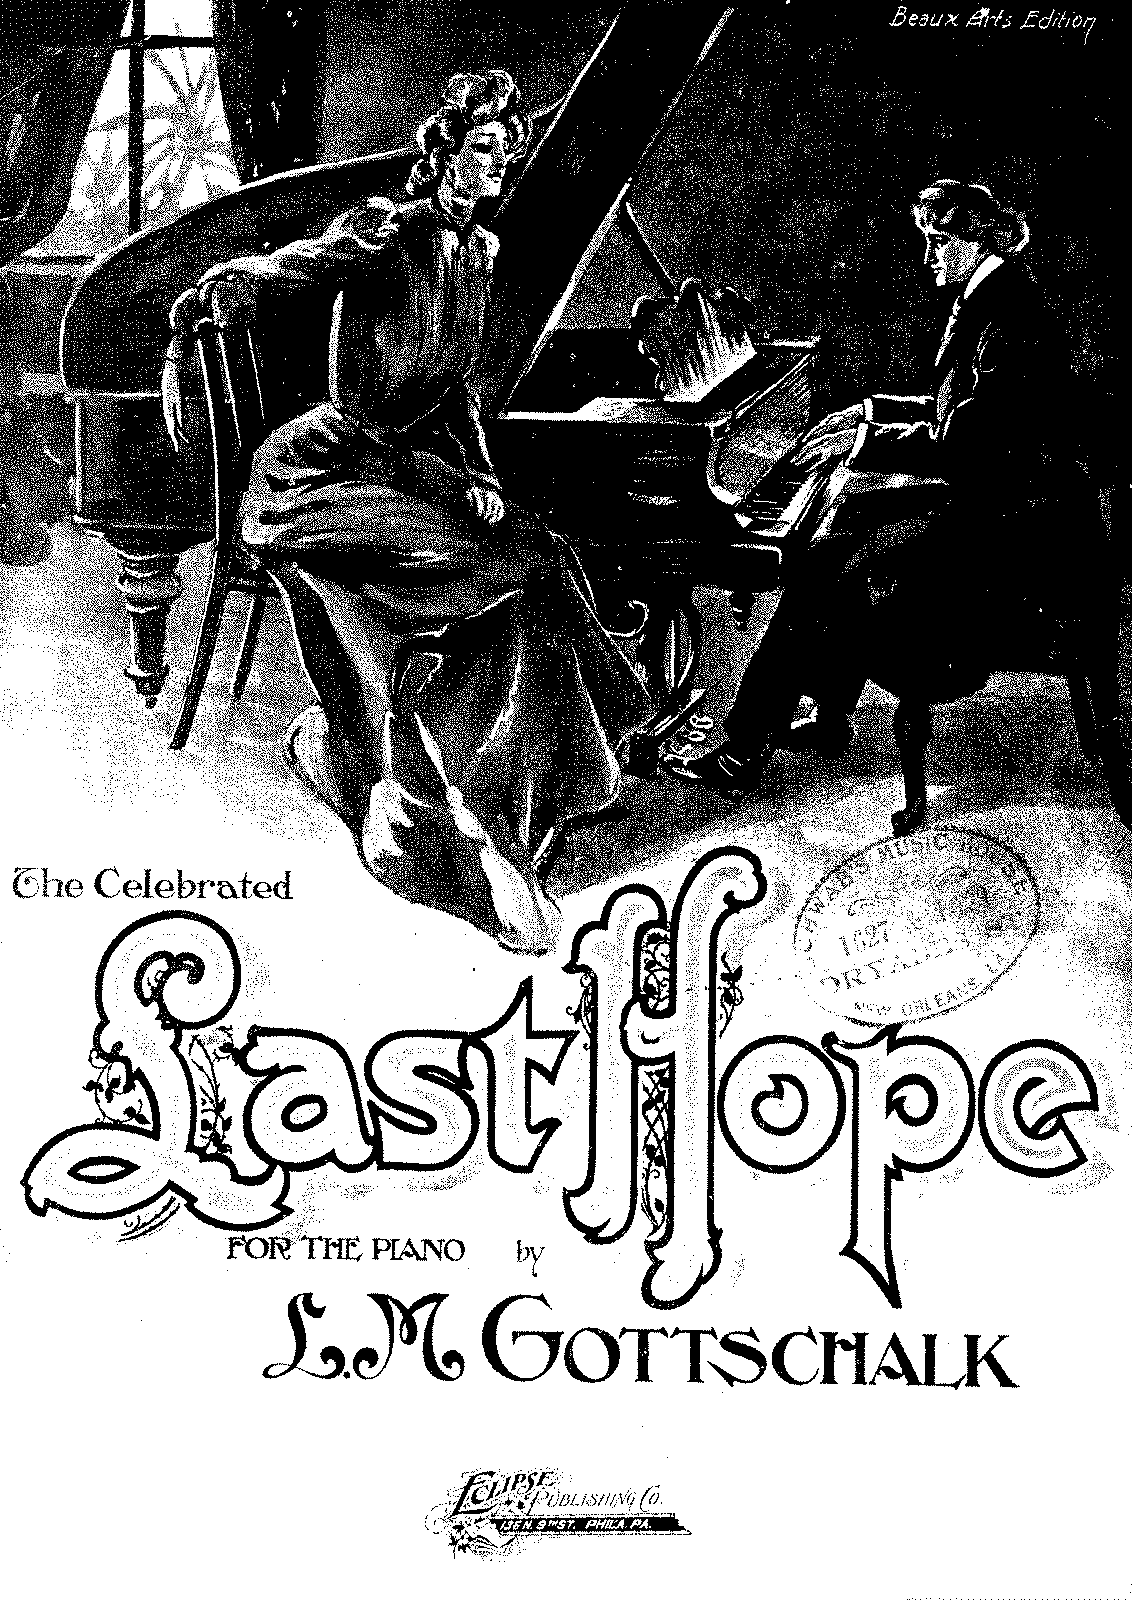 PMLP06680-Gottschalk - 16 The Last Hope - Eclipse Publishing Co. - n.d..pdf